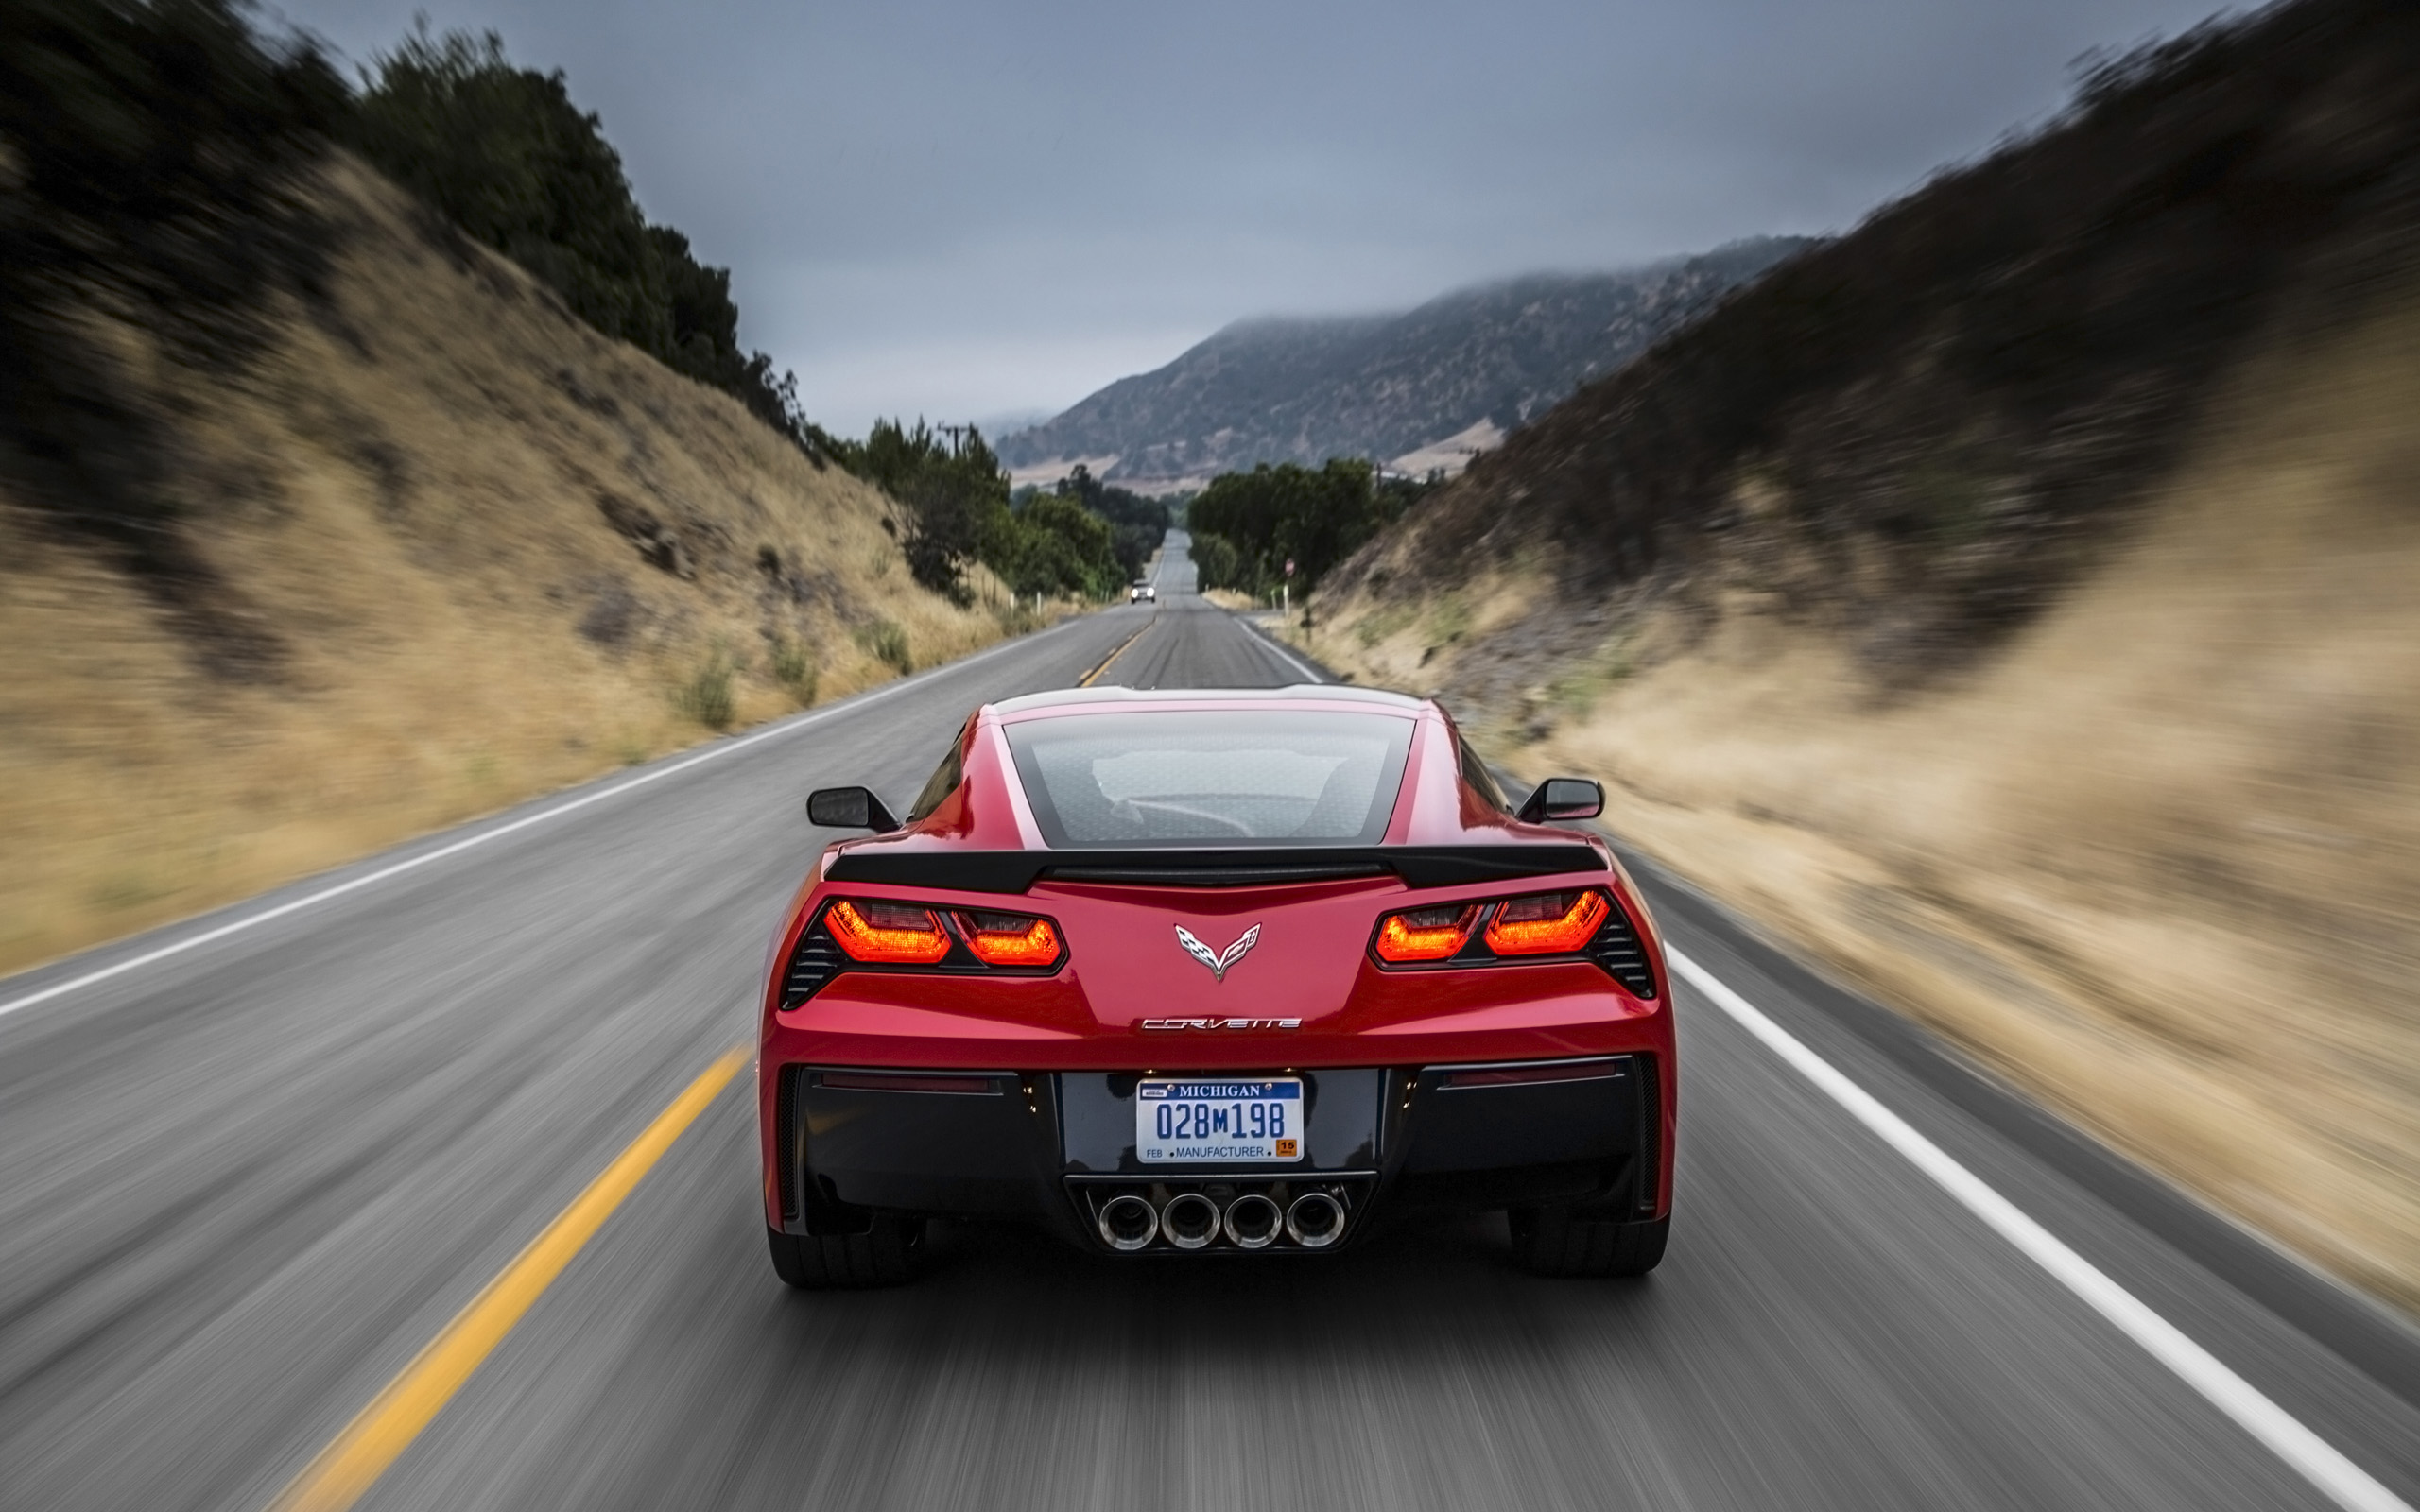 2014 Chevrolet Corvette Stingray Red Red Bewegungs